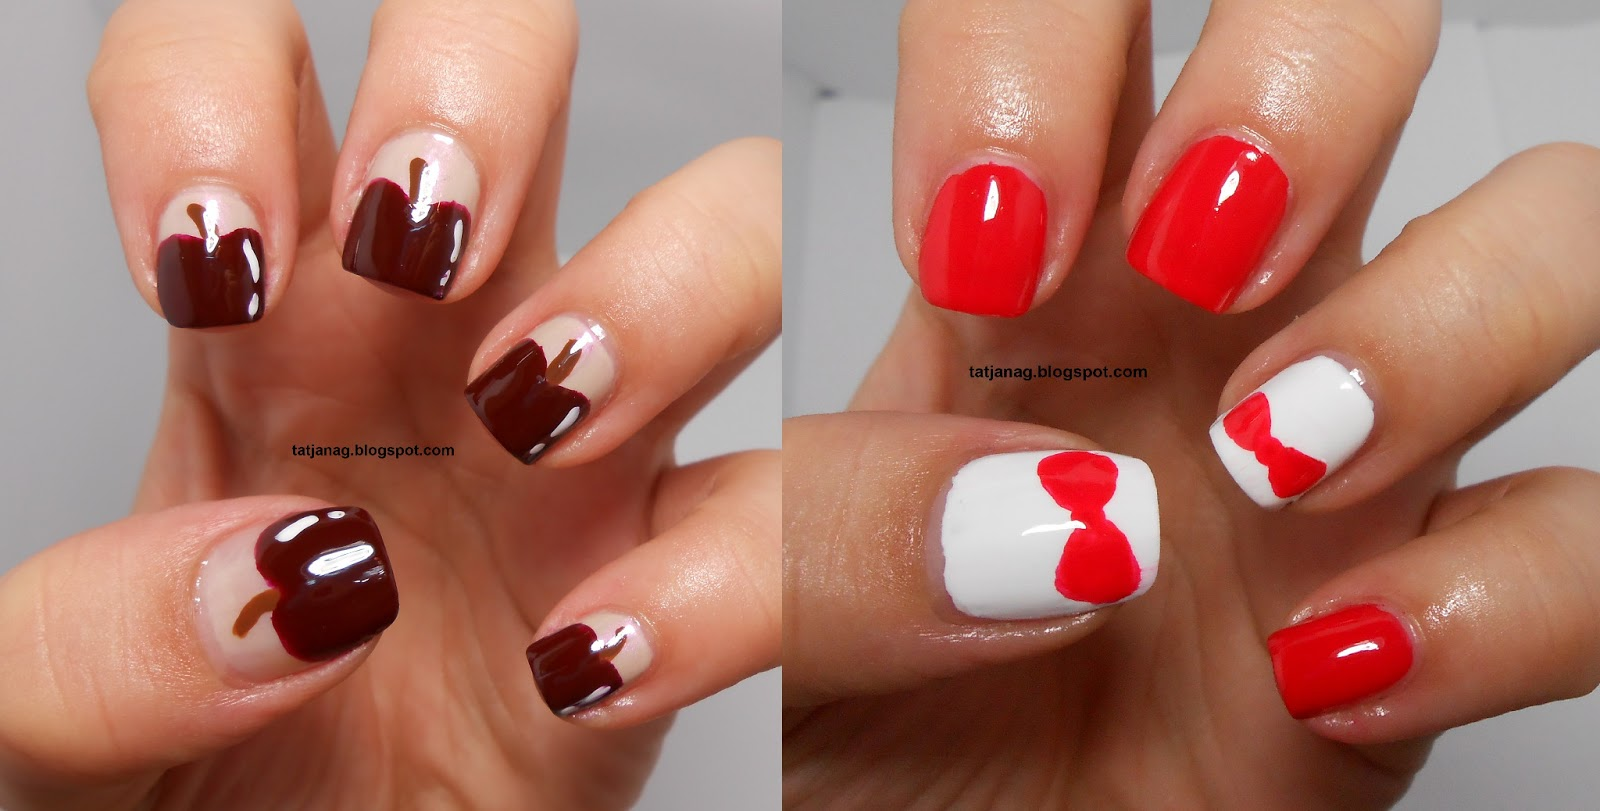 Nail art designs using brushes : Here are some nail art s i did using these brushes most of them you